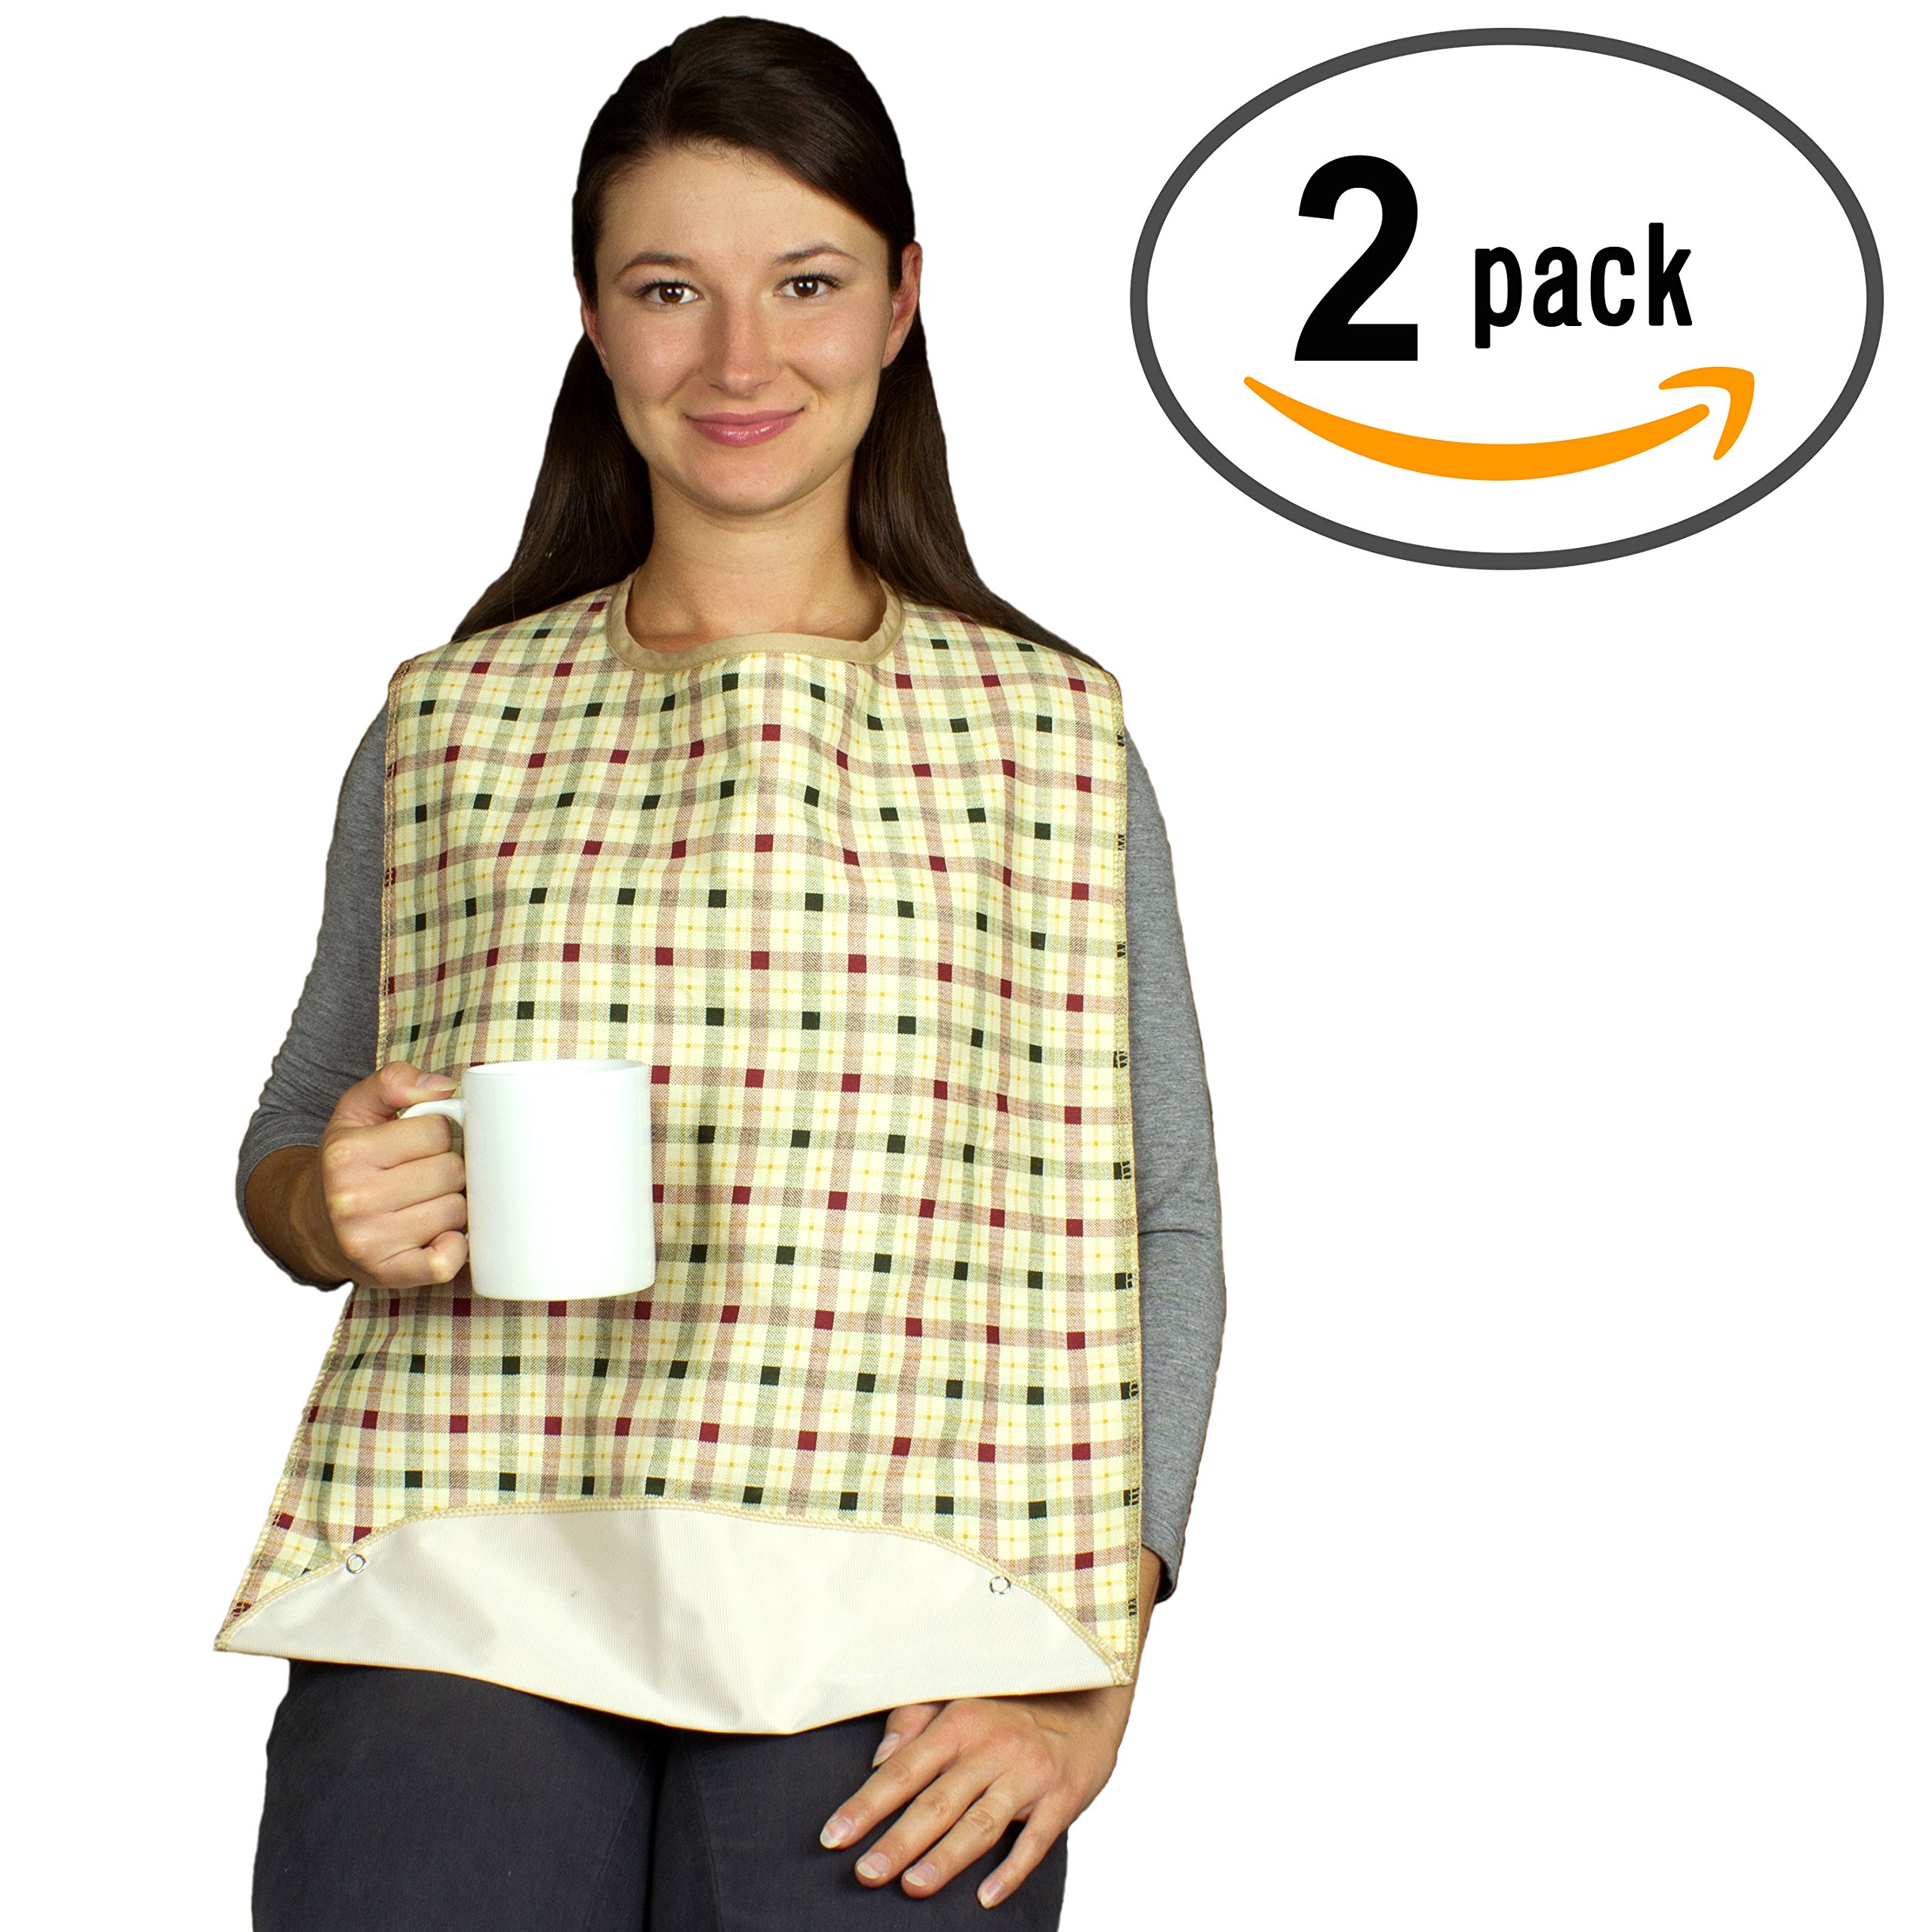 2 Pack - Washable Adult Bib with Optional Crumb Catcher, Vinyl Backing and Velcro Closure - Reusable Clothing Protector with Protective Backing - Great for Adults and Seniors